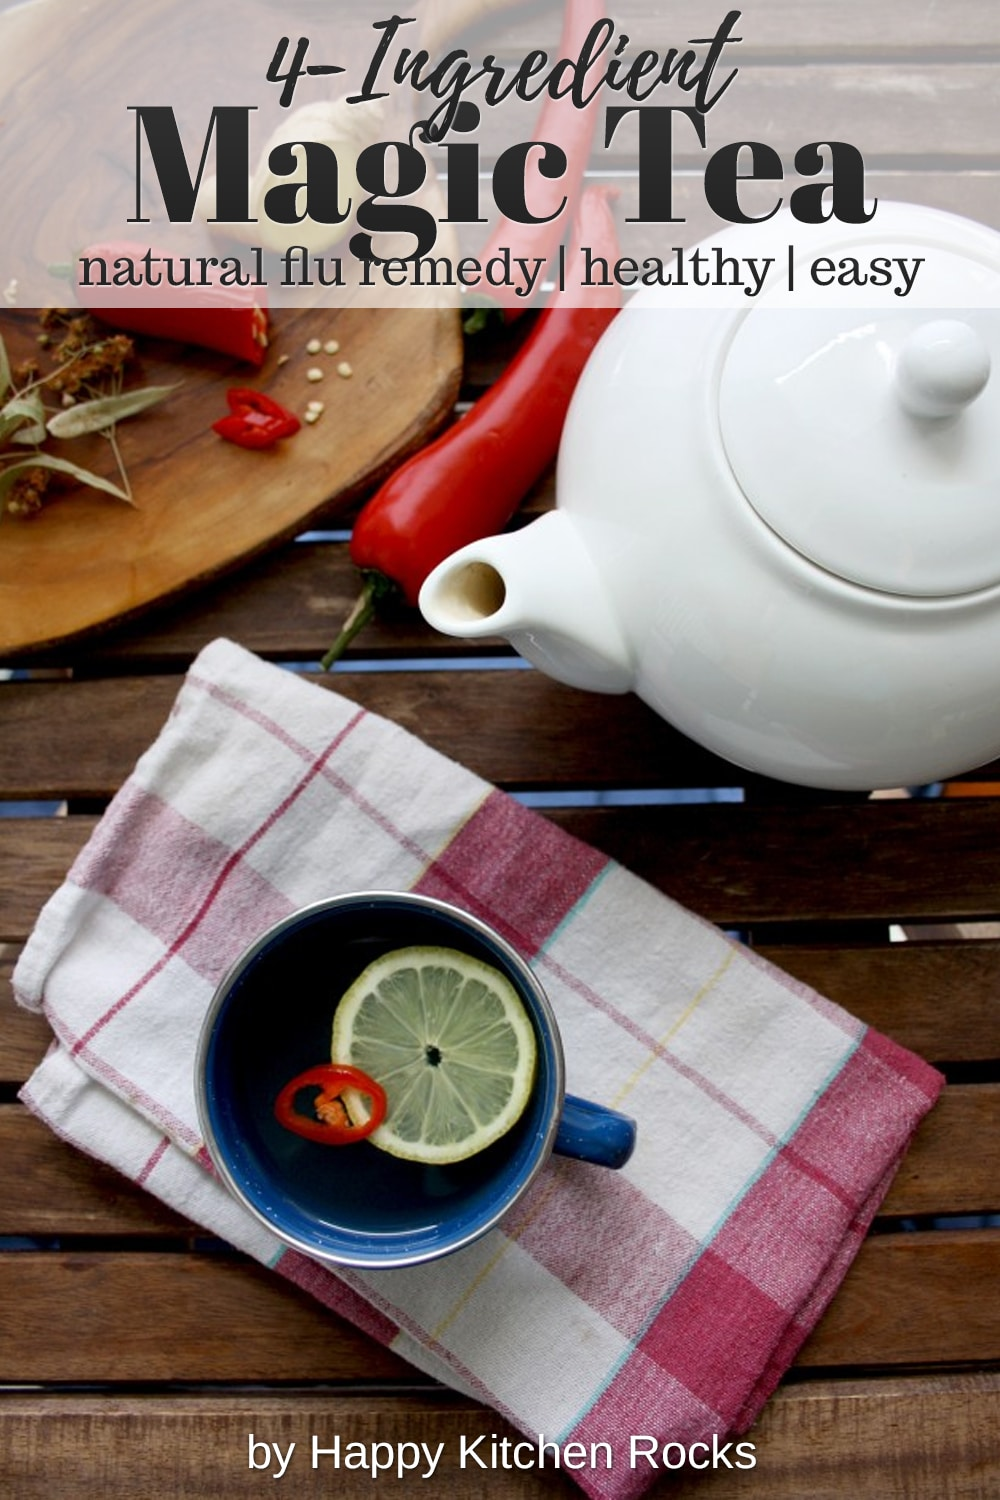 Natural Flu Remedy: Magic 4-Ingredient Tea Collage with Text Overlay